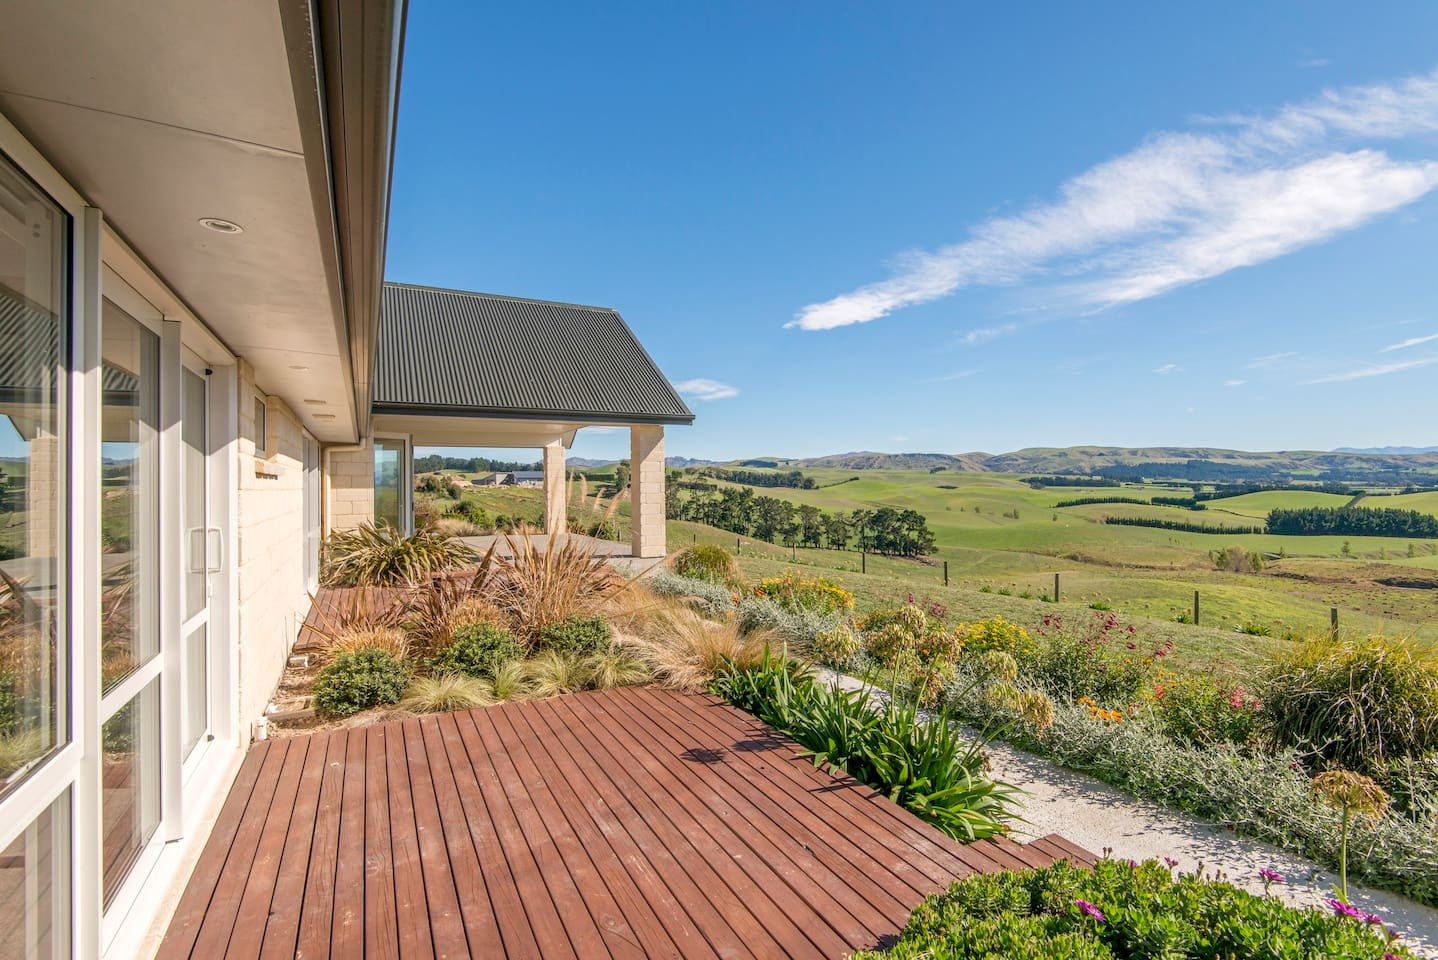 The view from the house is of the rolling pasture land leading up to the hills and mountains in the distance.  Each room has sliding doors that open out onto a deck.  Kowhai's deck has a view of the garden and some distant mountains.